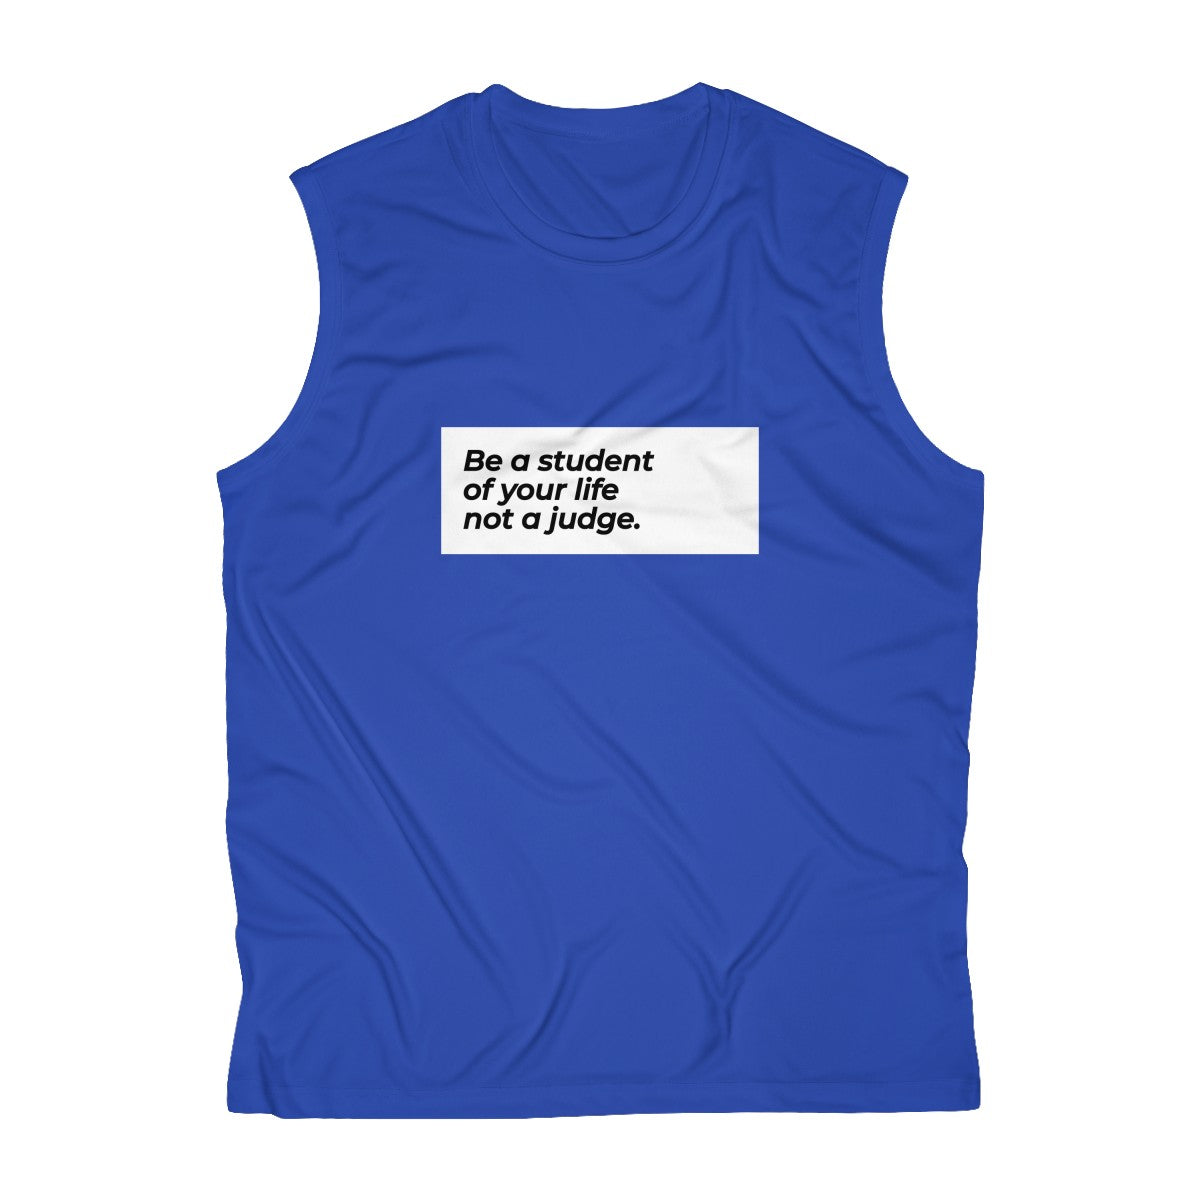 Be A Student And Not A Judge Of Your Life Men's Sleeveless Performance Tee